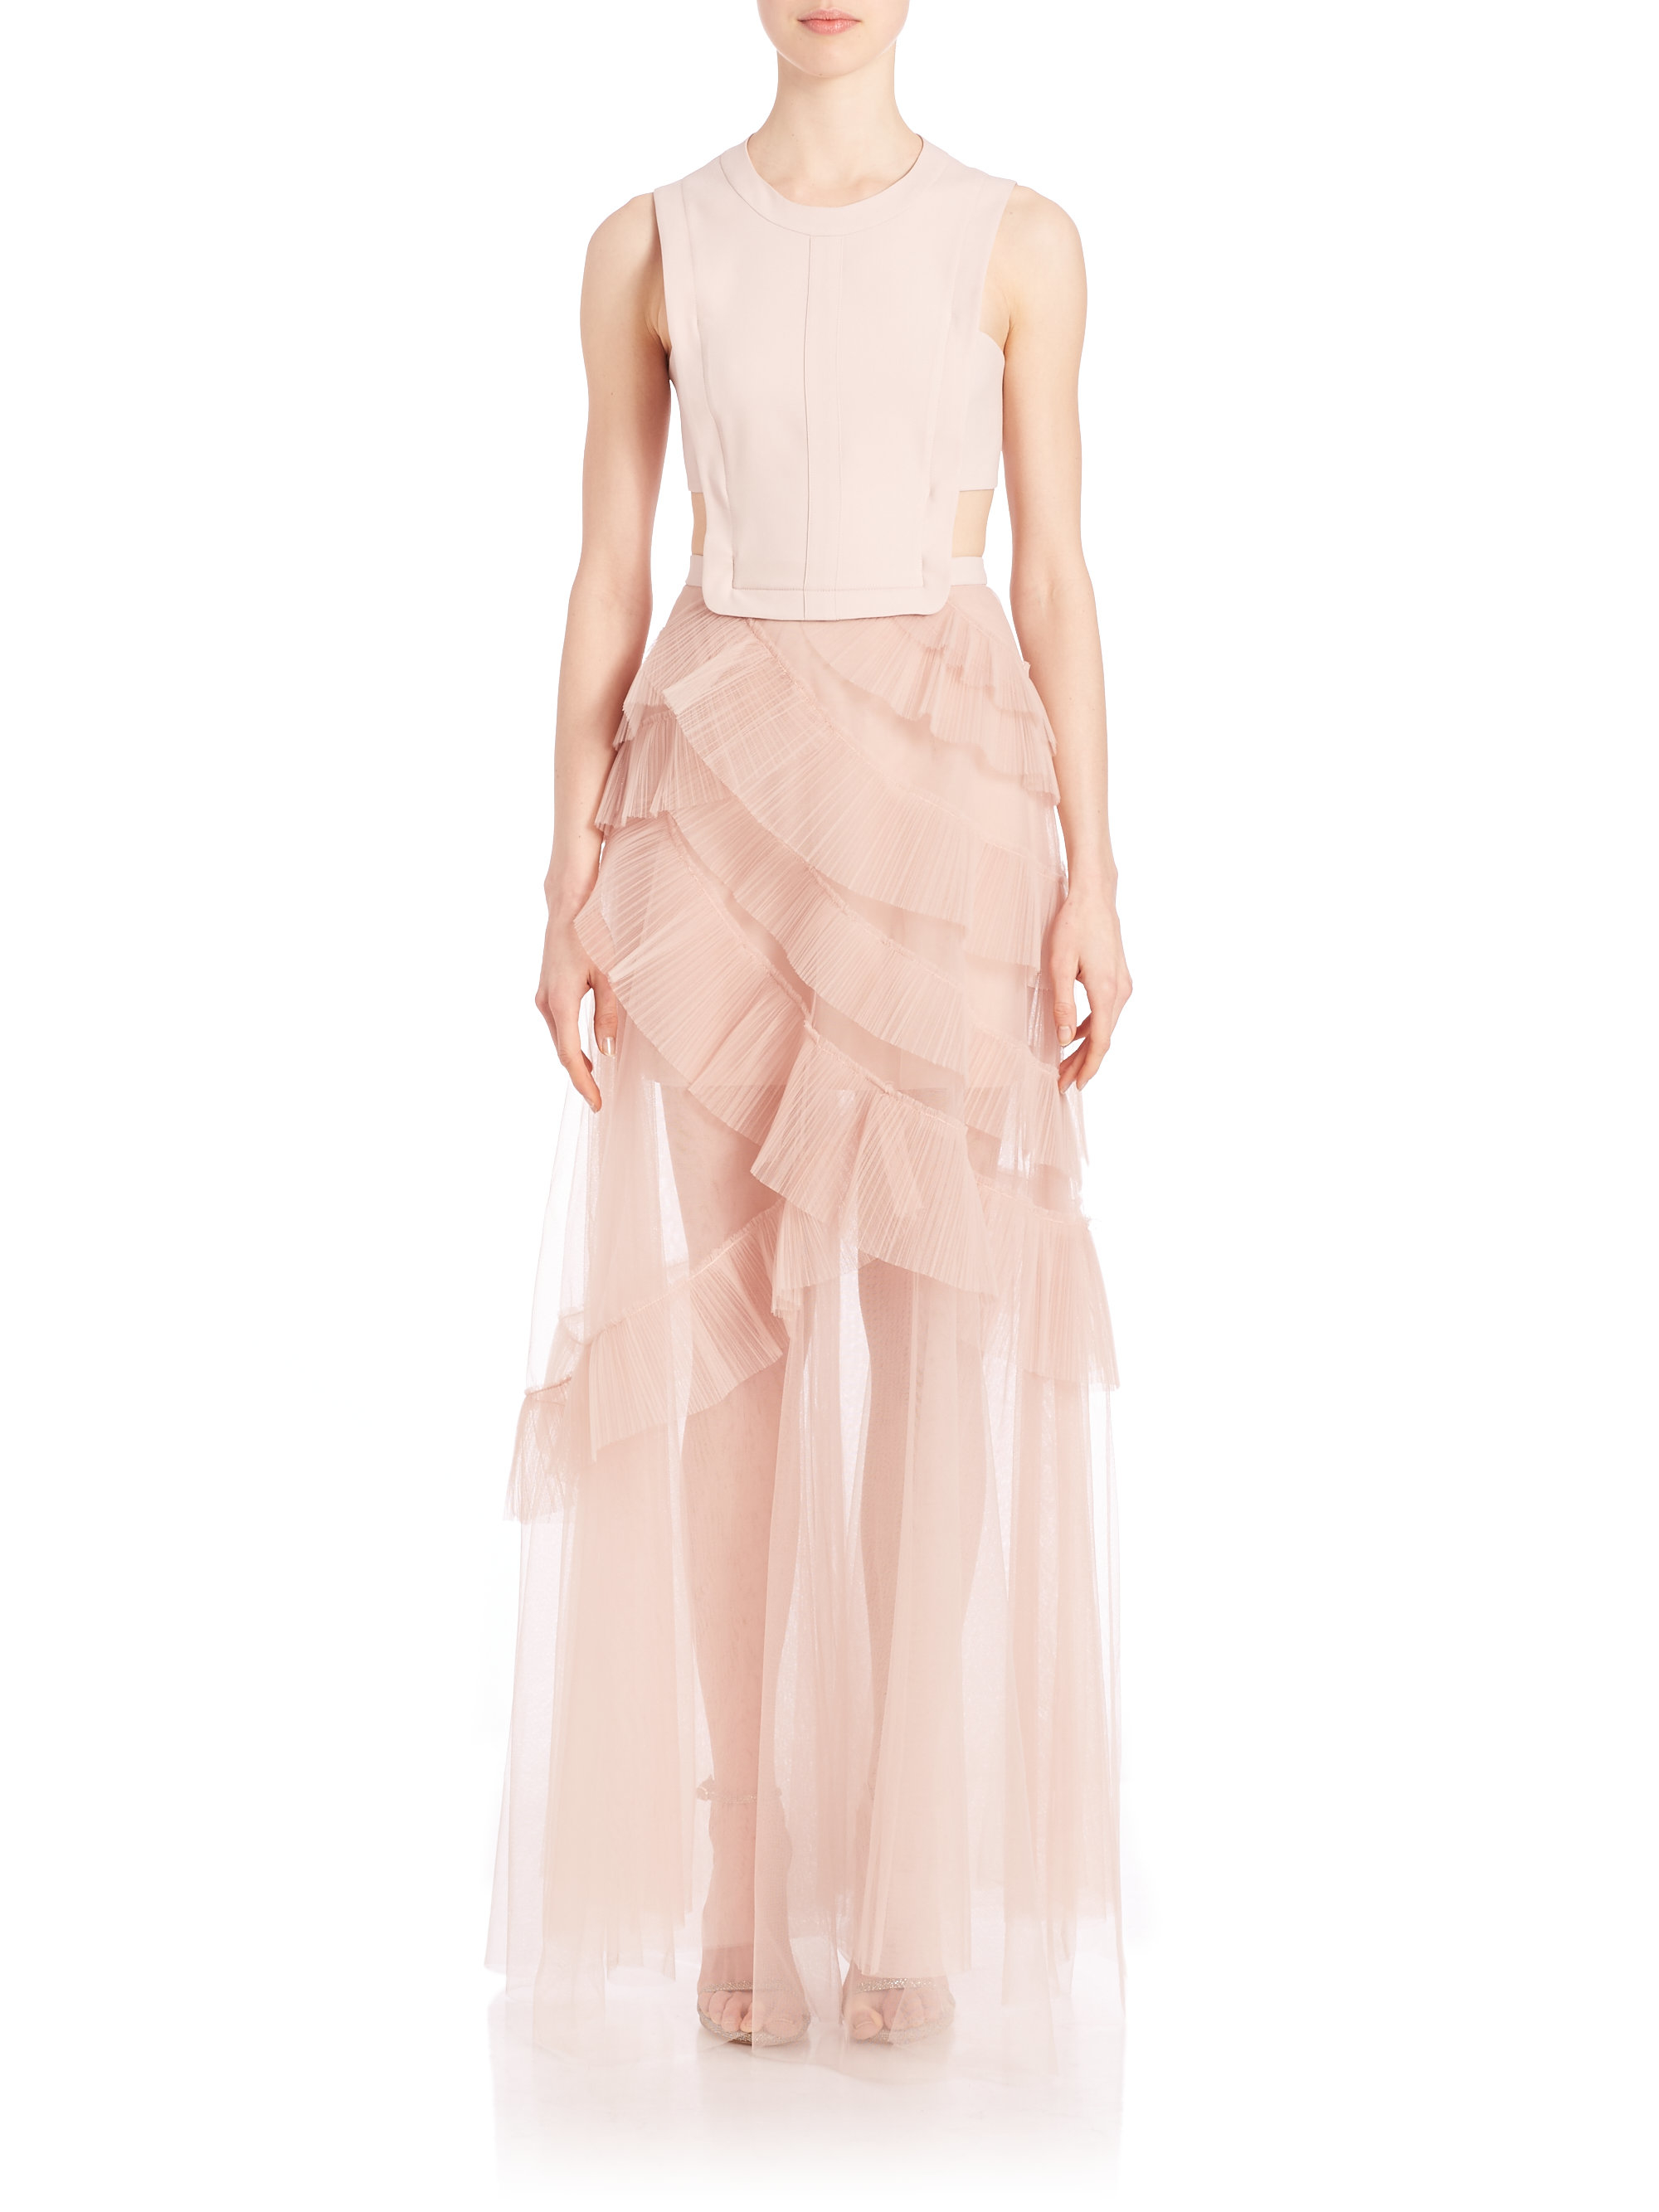 Lyst - Bcbgmaxazria Avalon Sheer Cutout Gown in Pink